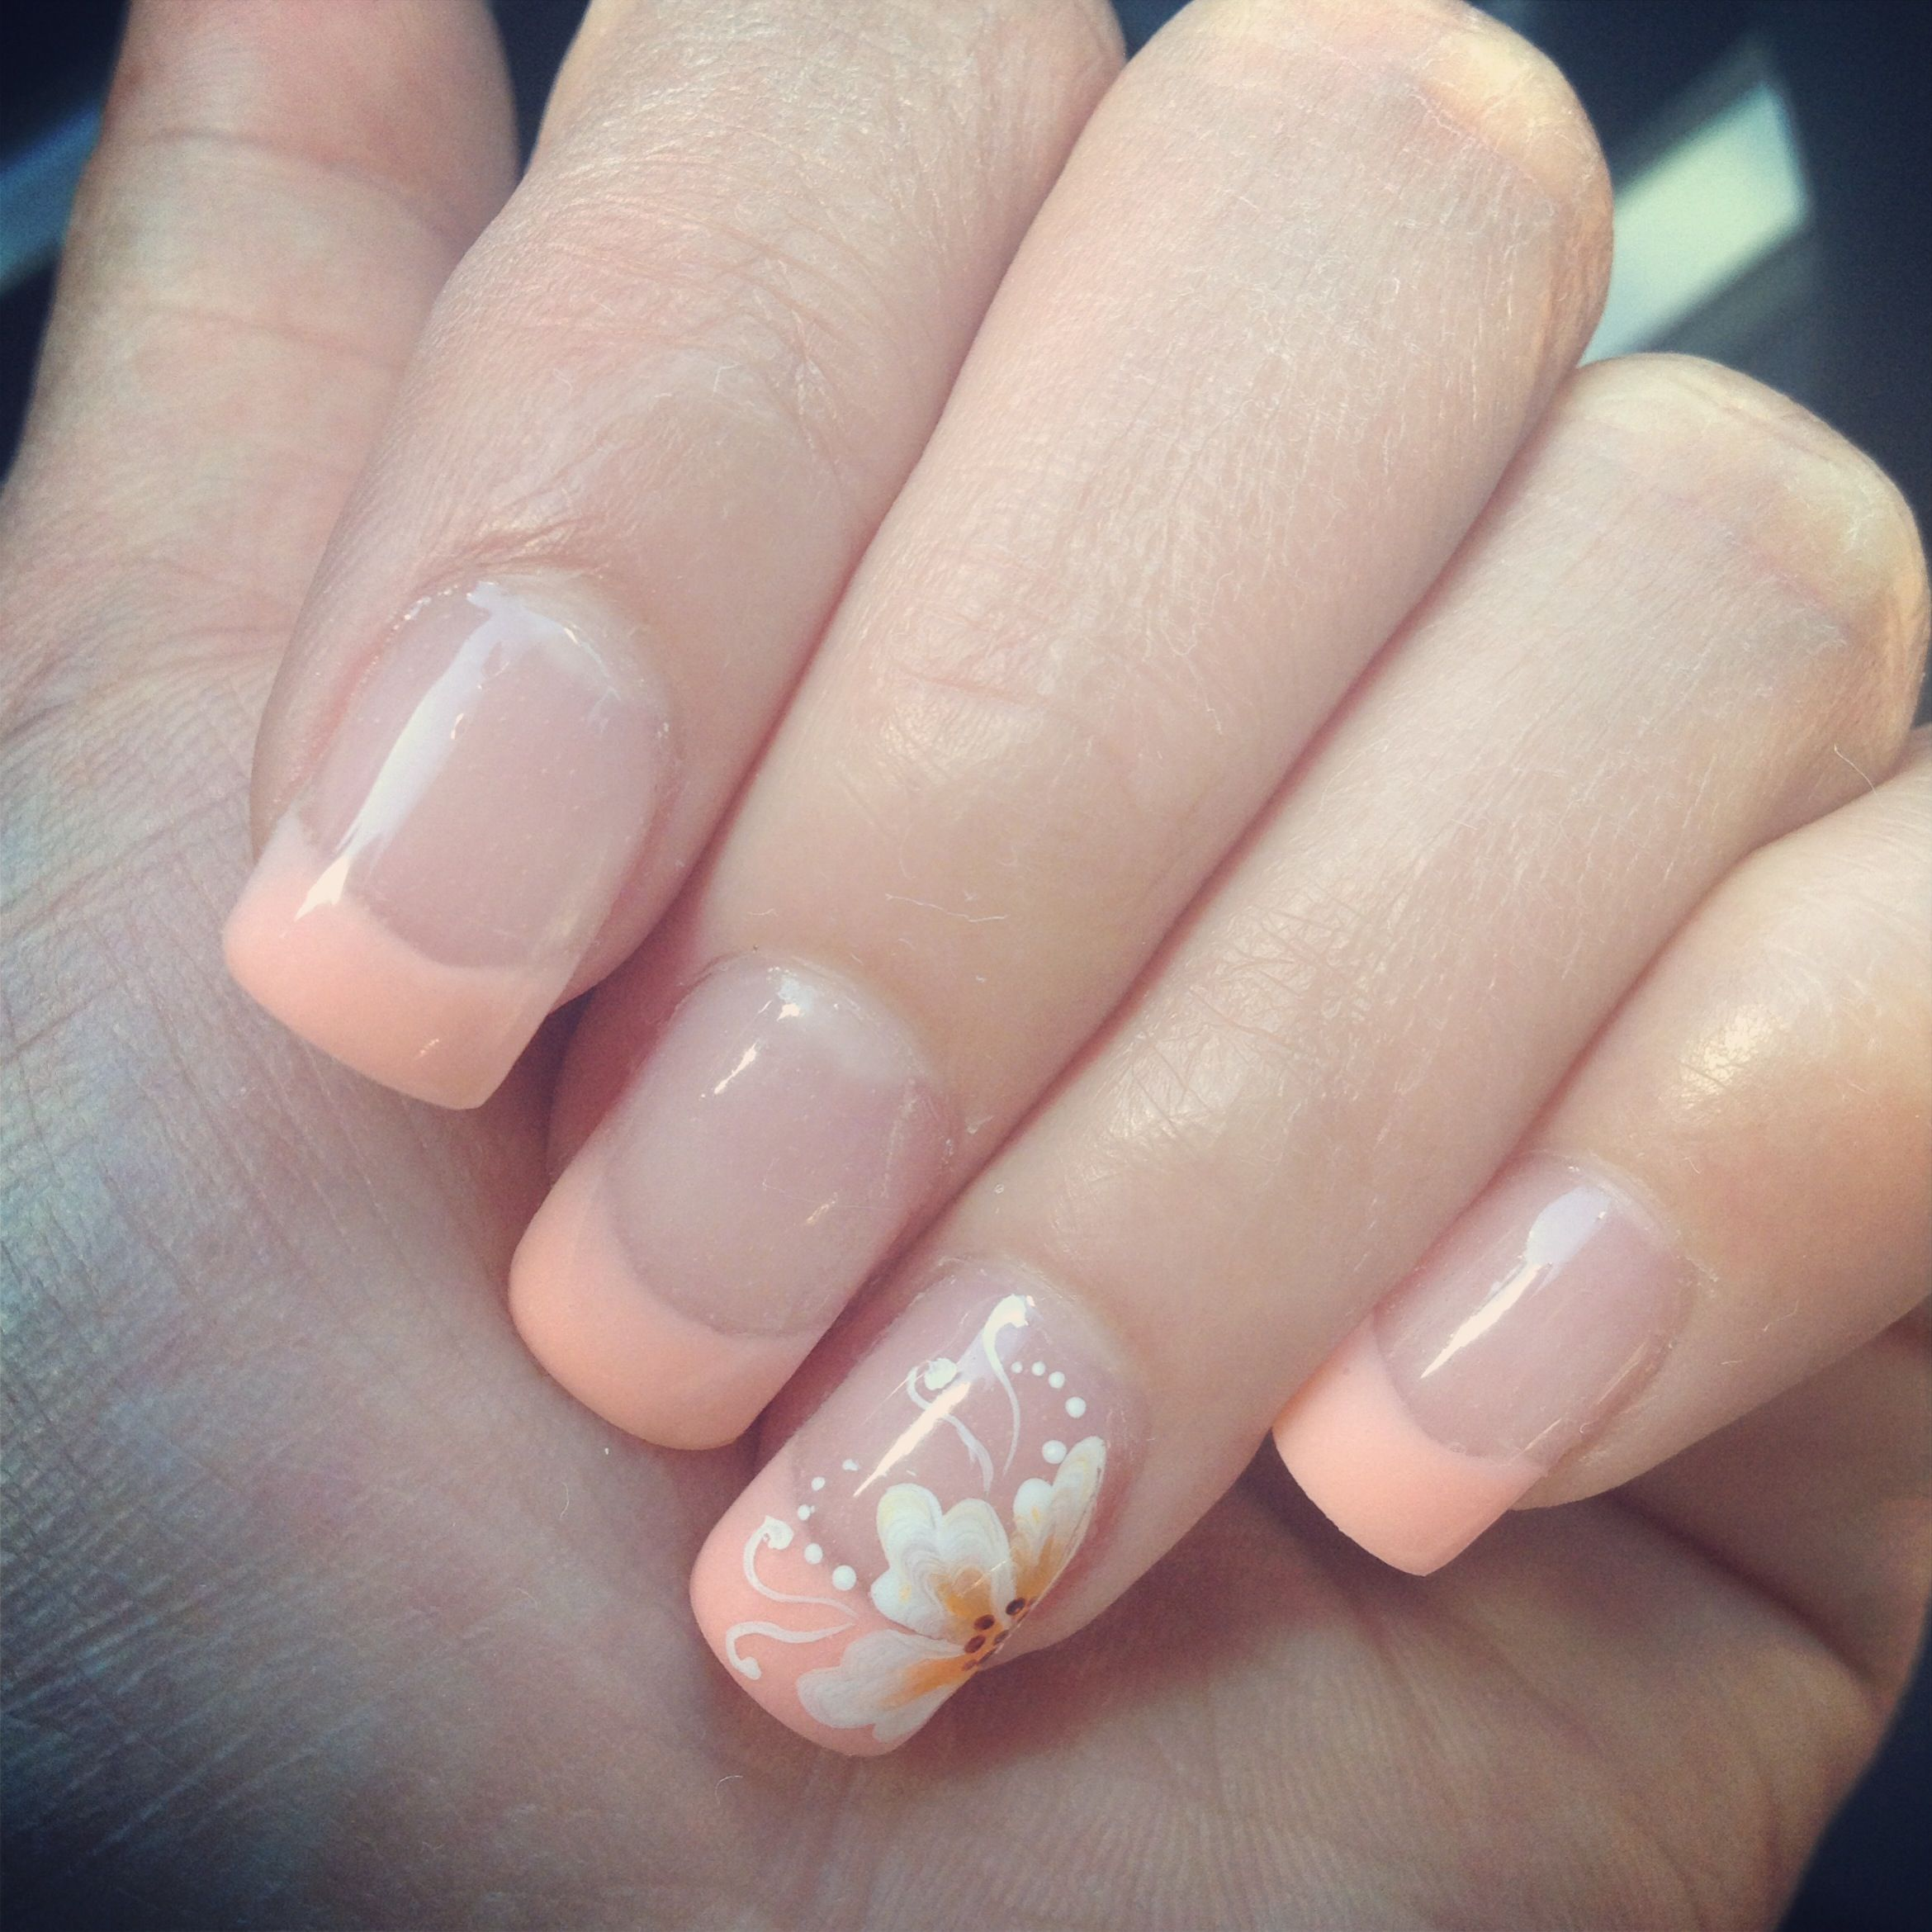 My Own Peach French Nail With Nail Art Paznokcie Ladne